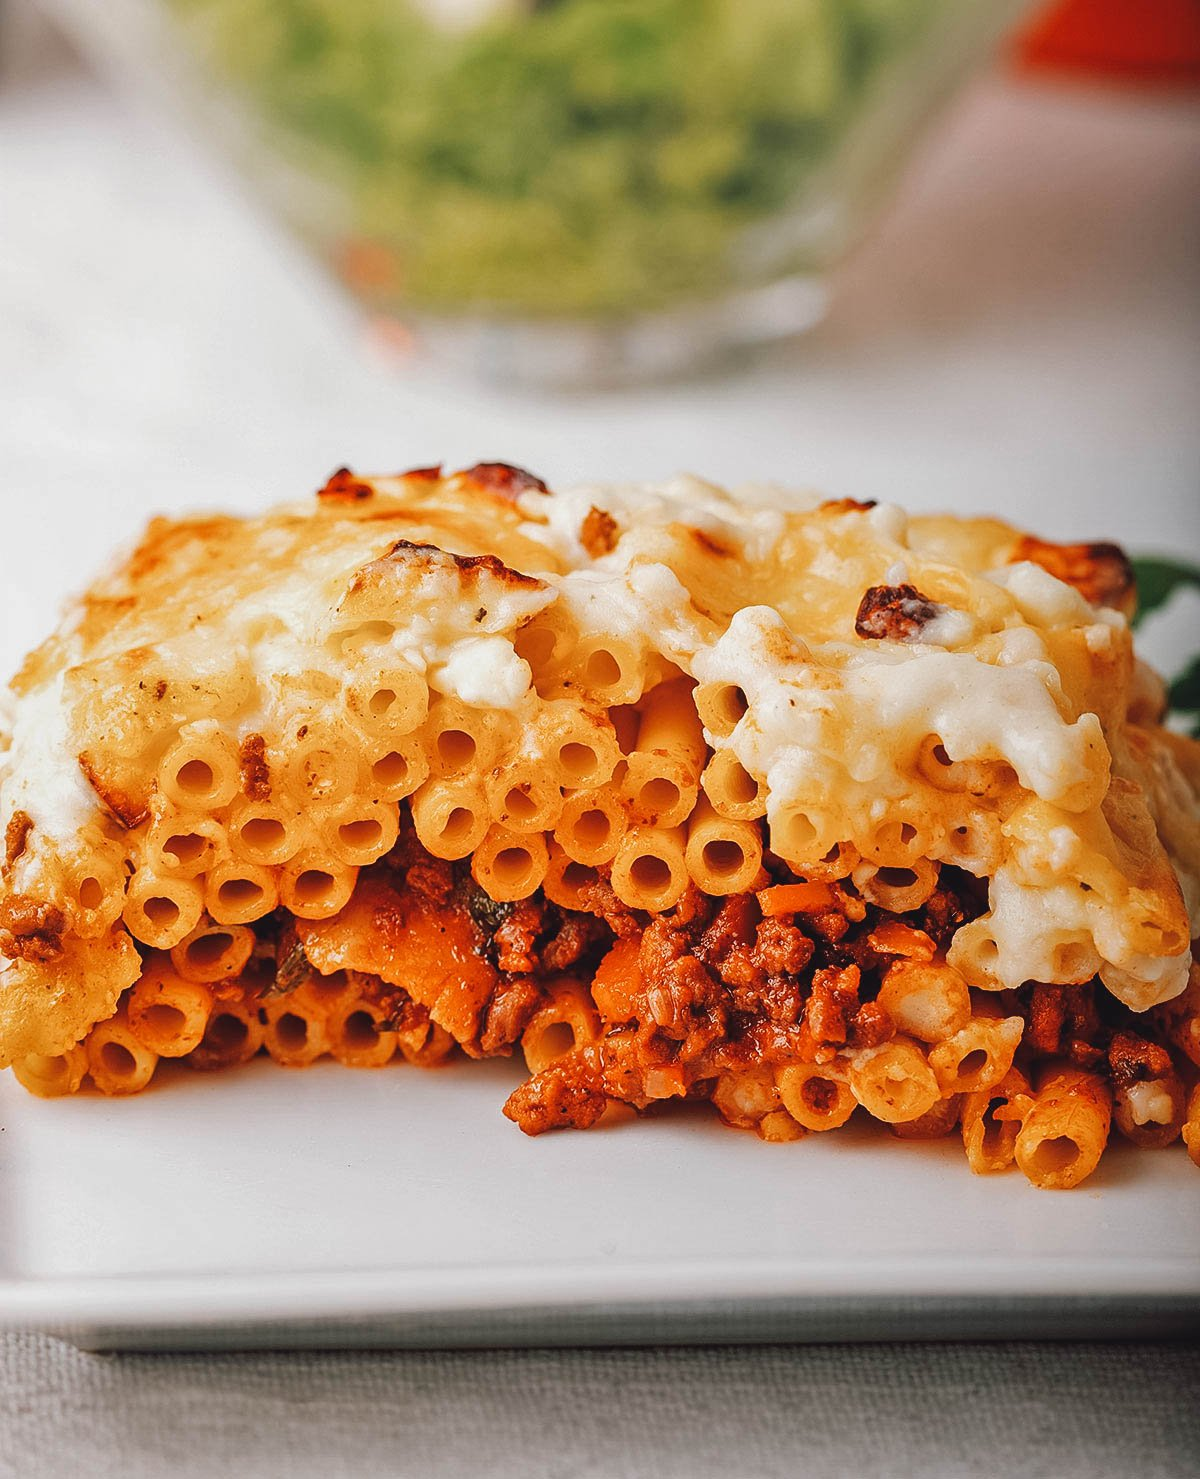 Macaroni bechamel with tomato sauce, one of the most popular and comforting Egyptian dishes